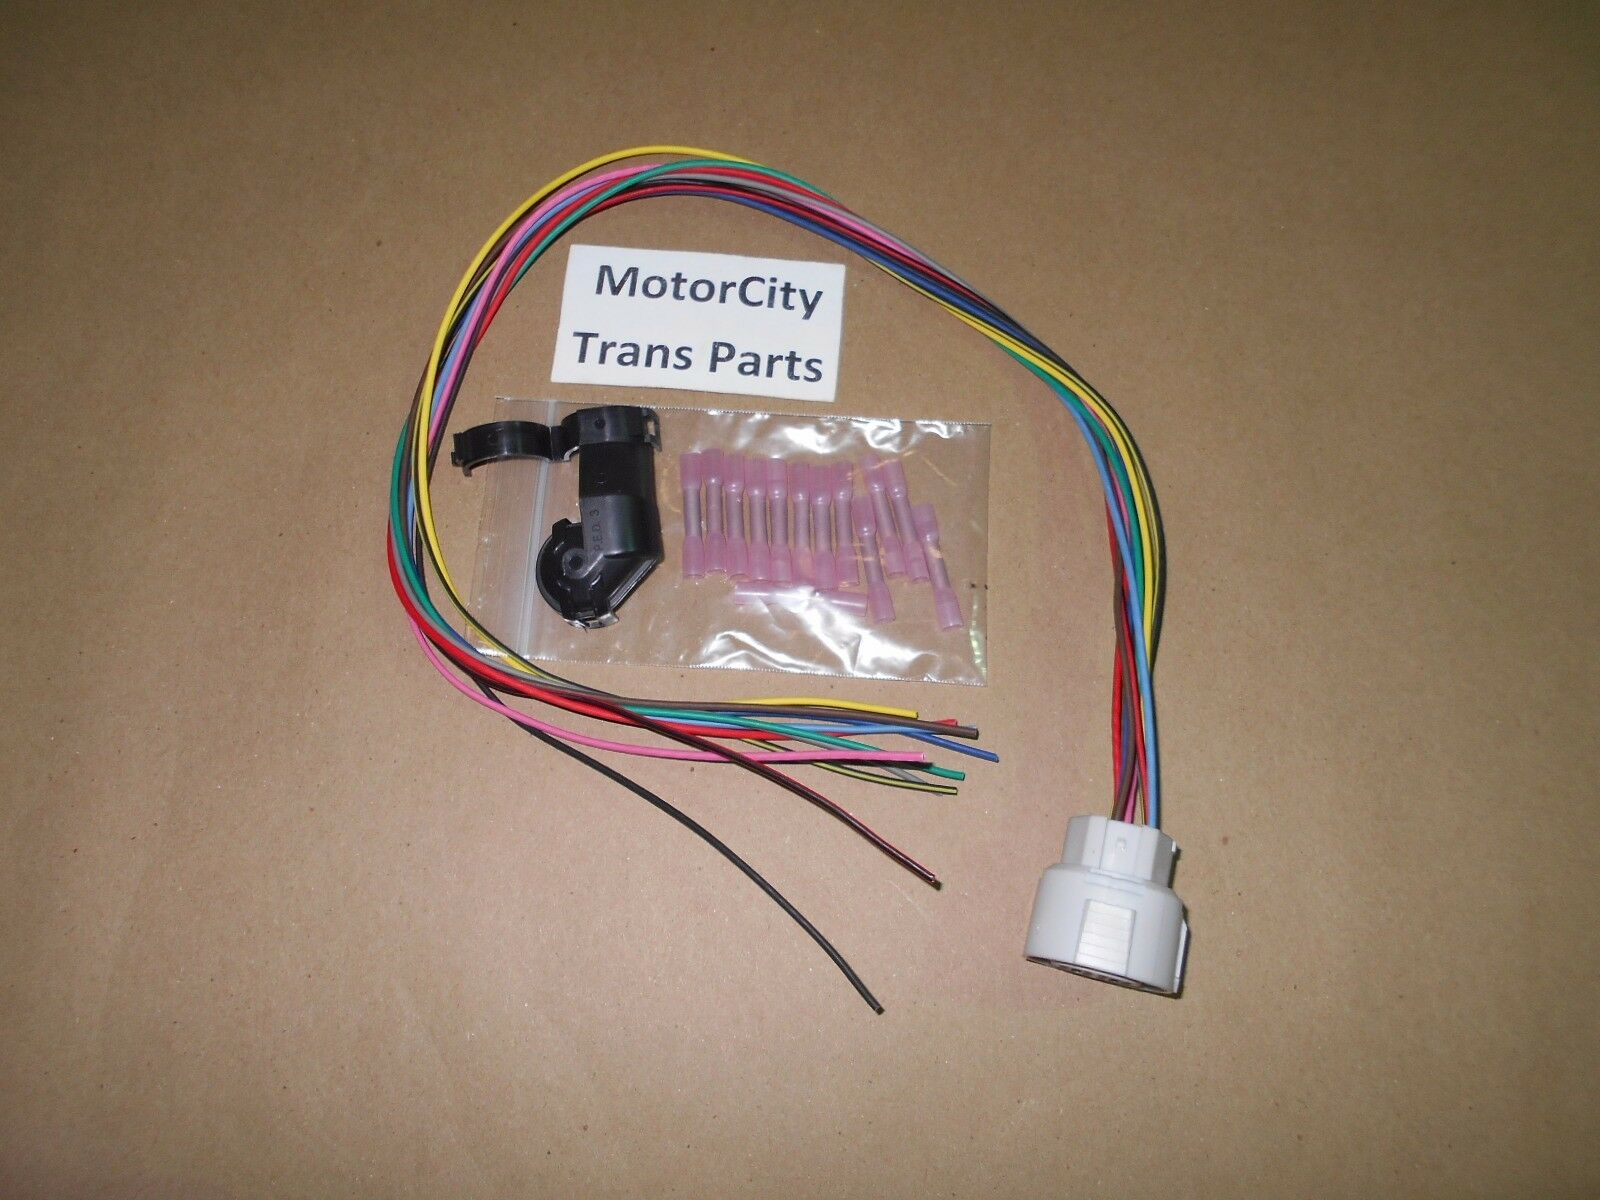 Gm 4l80e 4l85e Transmission External Wire Harness 1991 On Oem New Parts Rostra 1 Of 2free Shipping